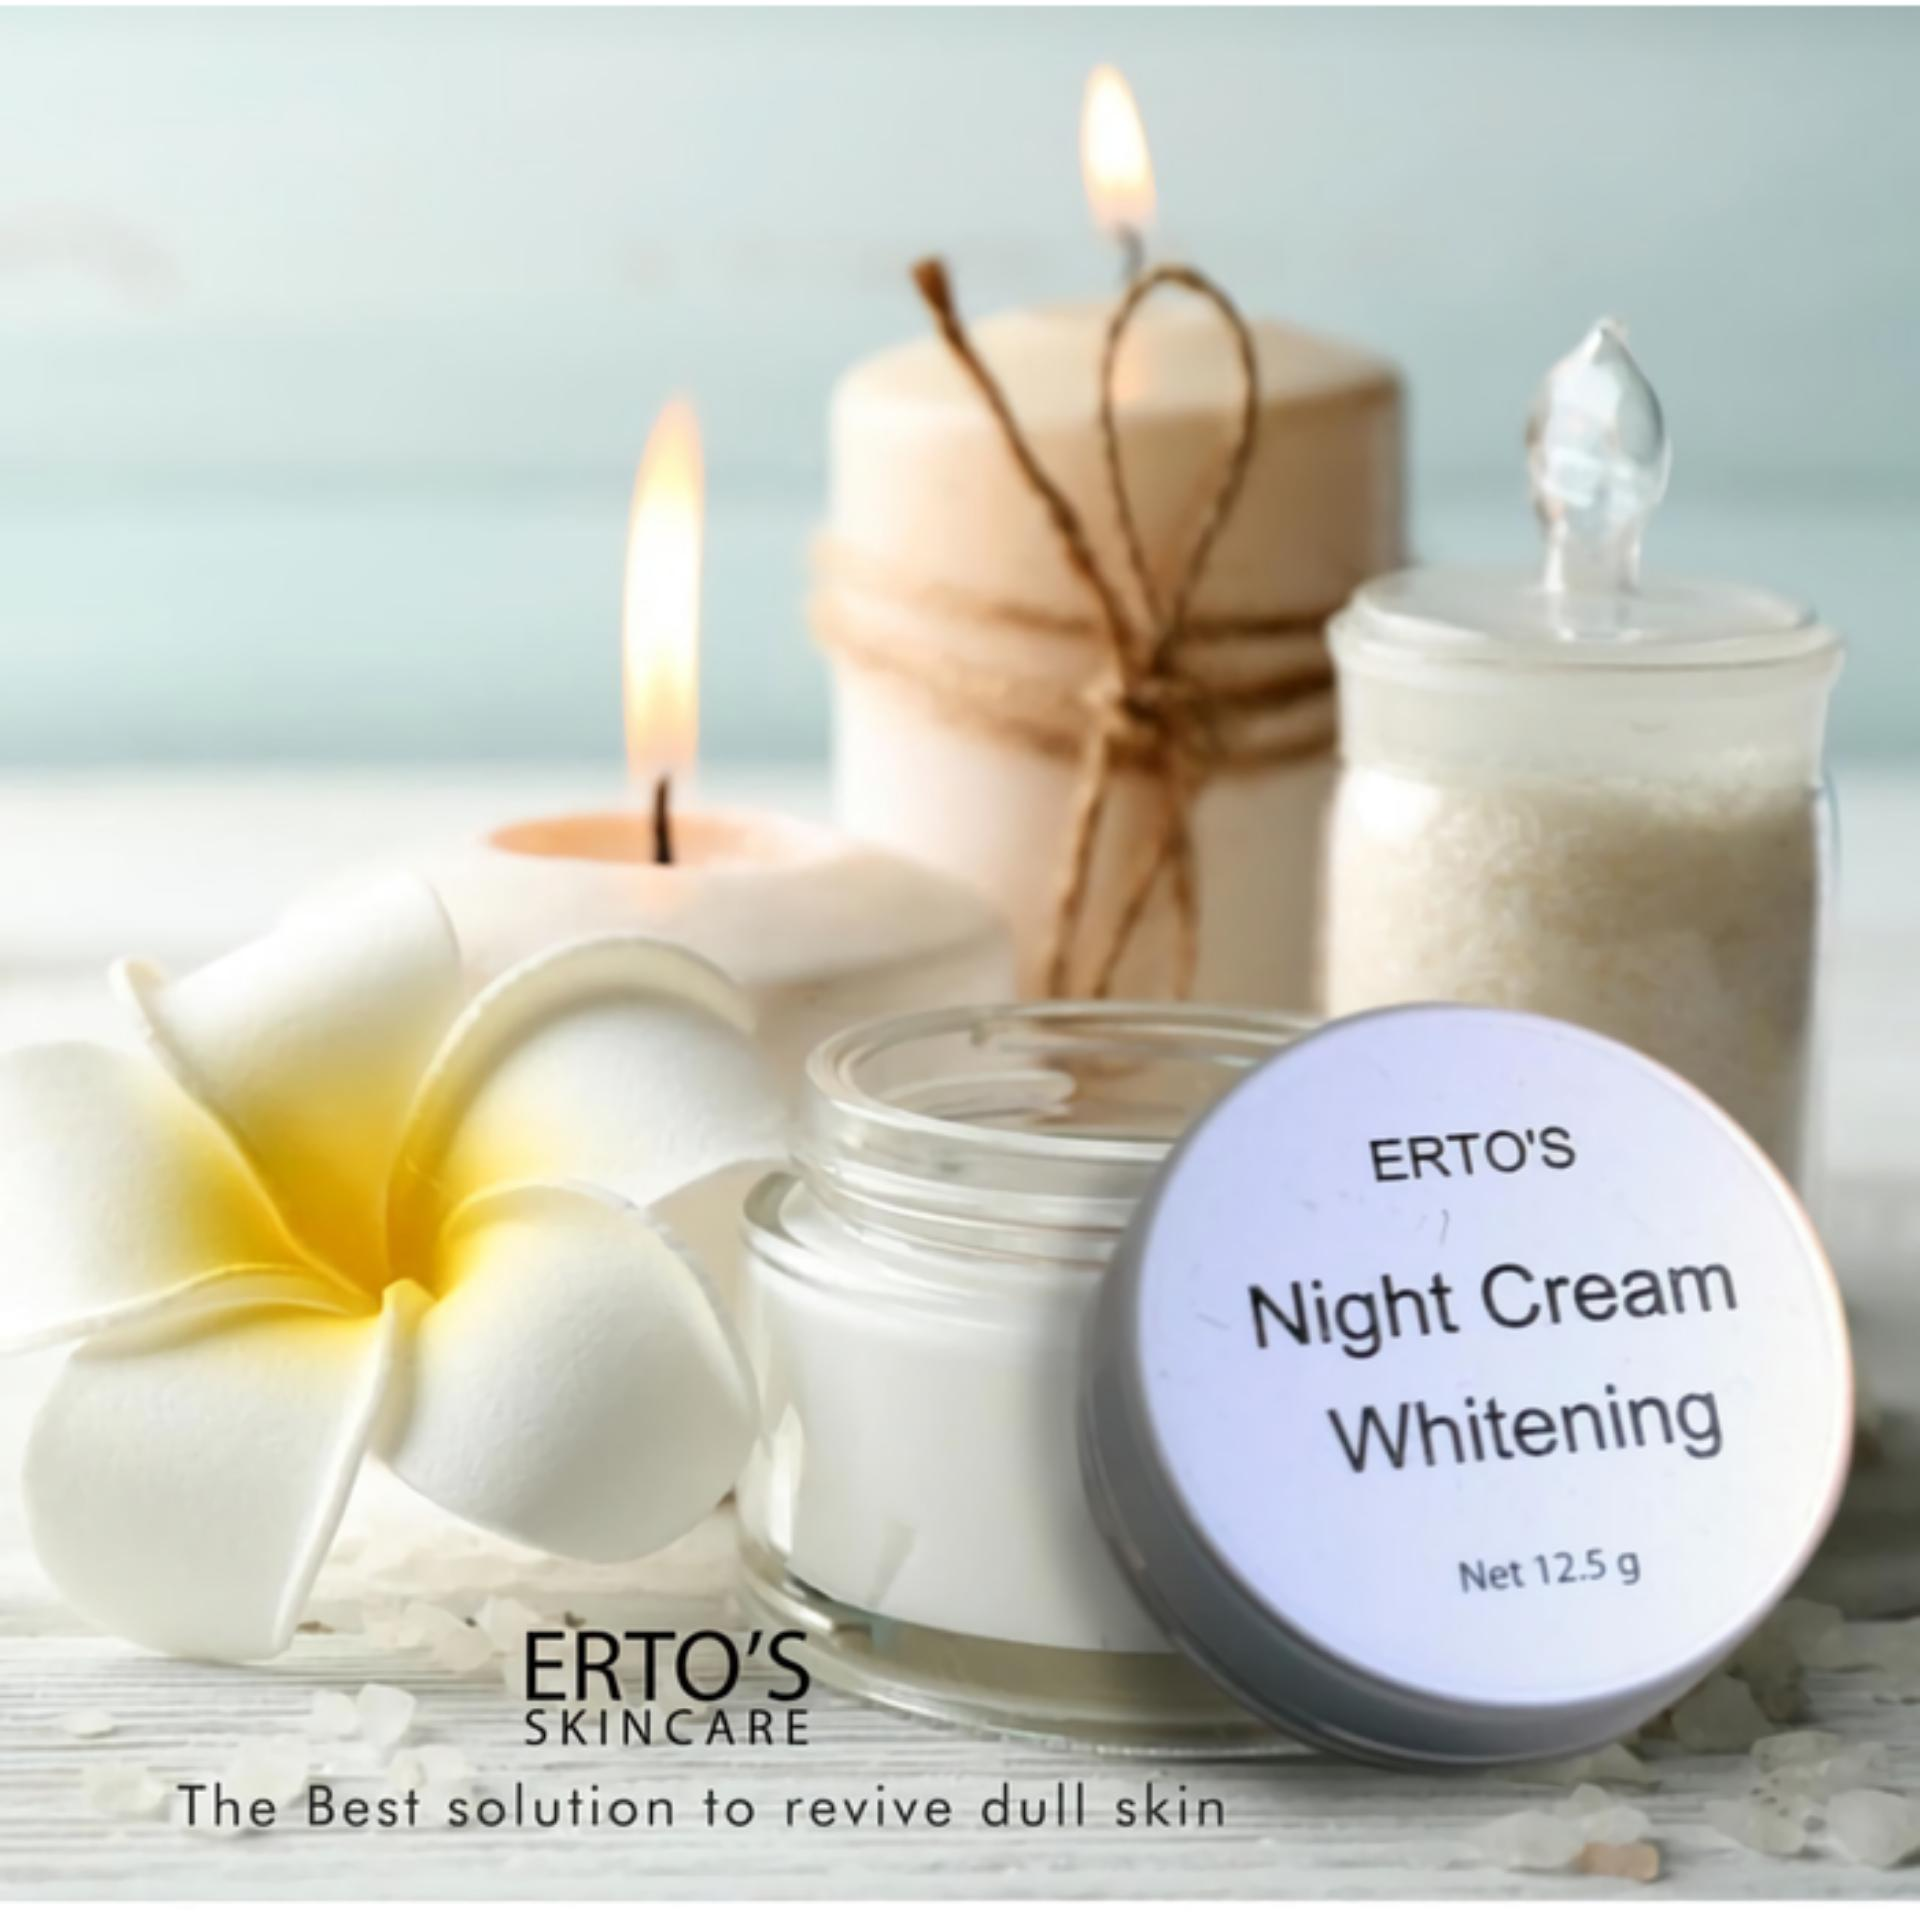 Kehebatan Ertos Night Cream Whitening Original Bpom Dan Harga Update Dermo Care Skincare